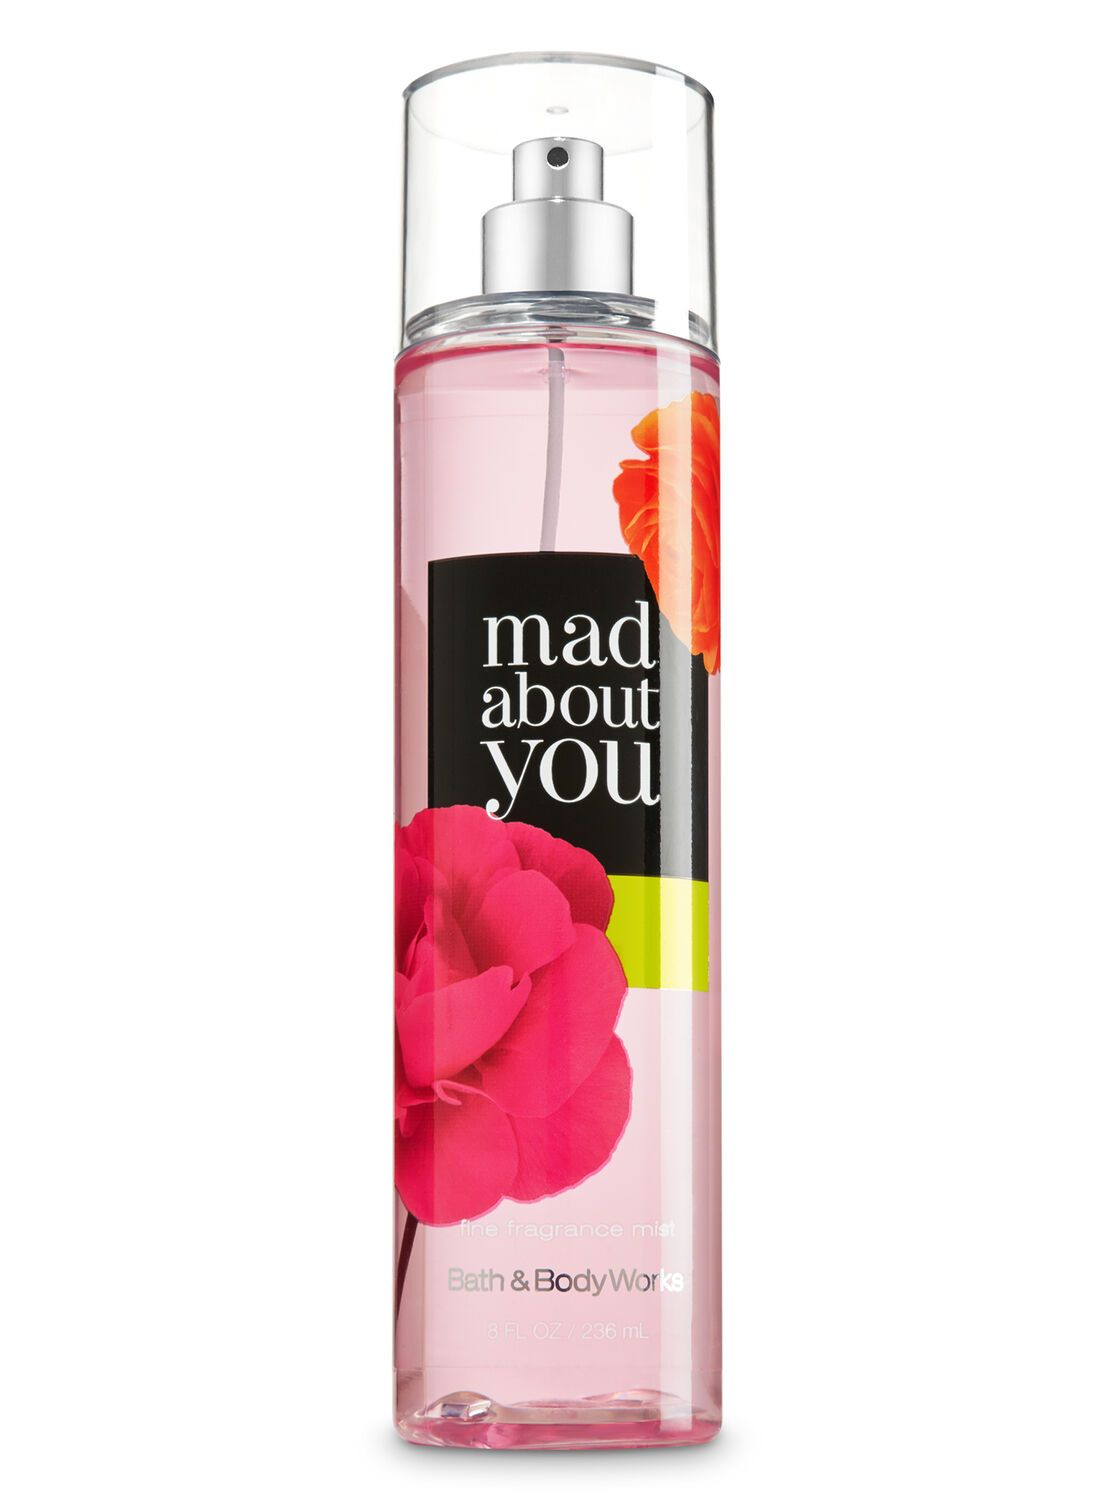 Signature Collection Mad About You Fine Fragrance Mist Bath